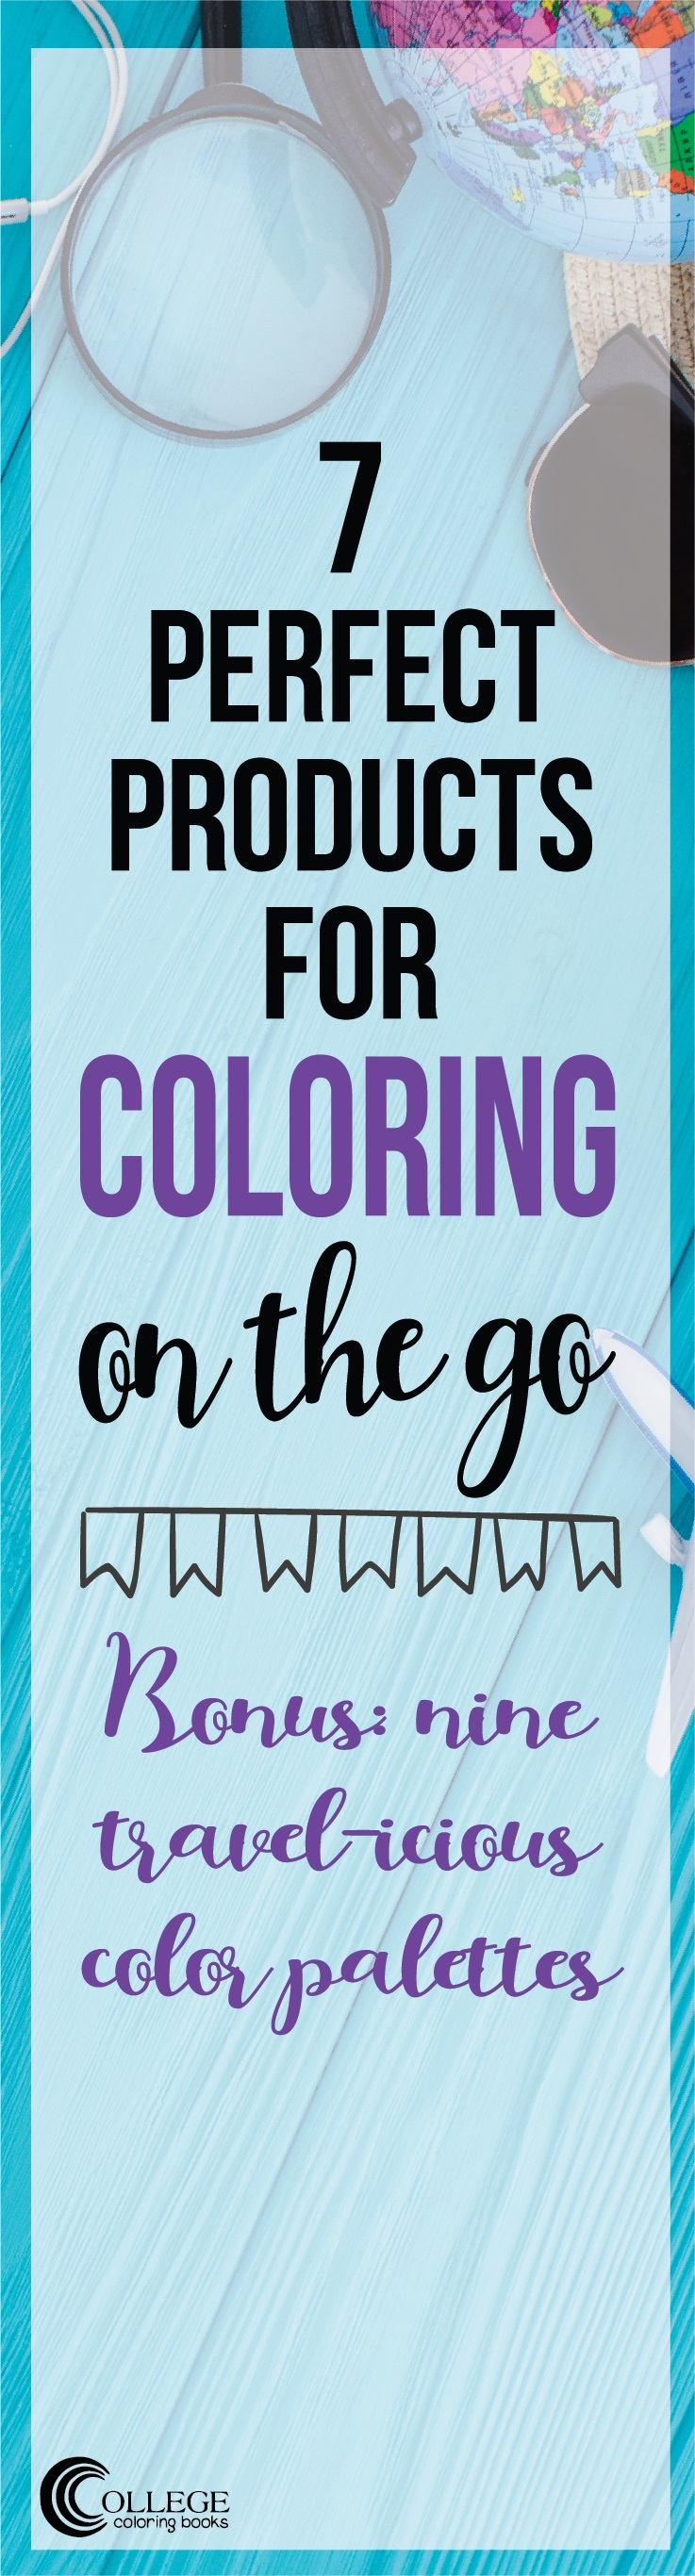 College Coloring Books 7 Perfect Products for Coloring on the Go Pinterest Long Pin